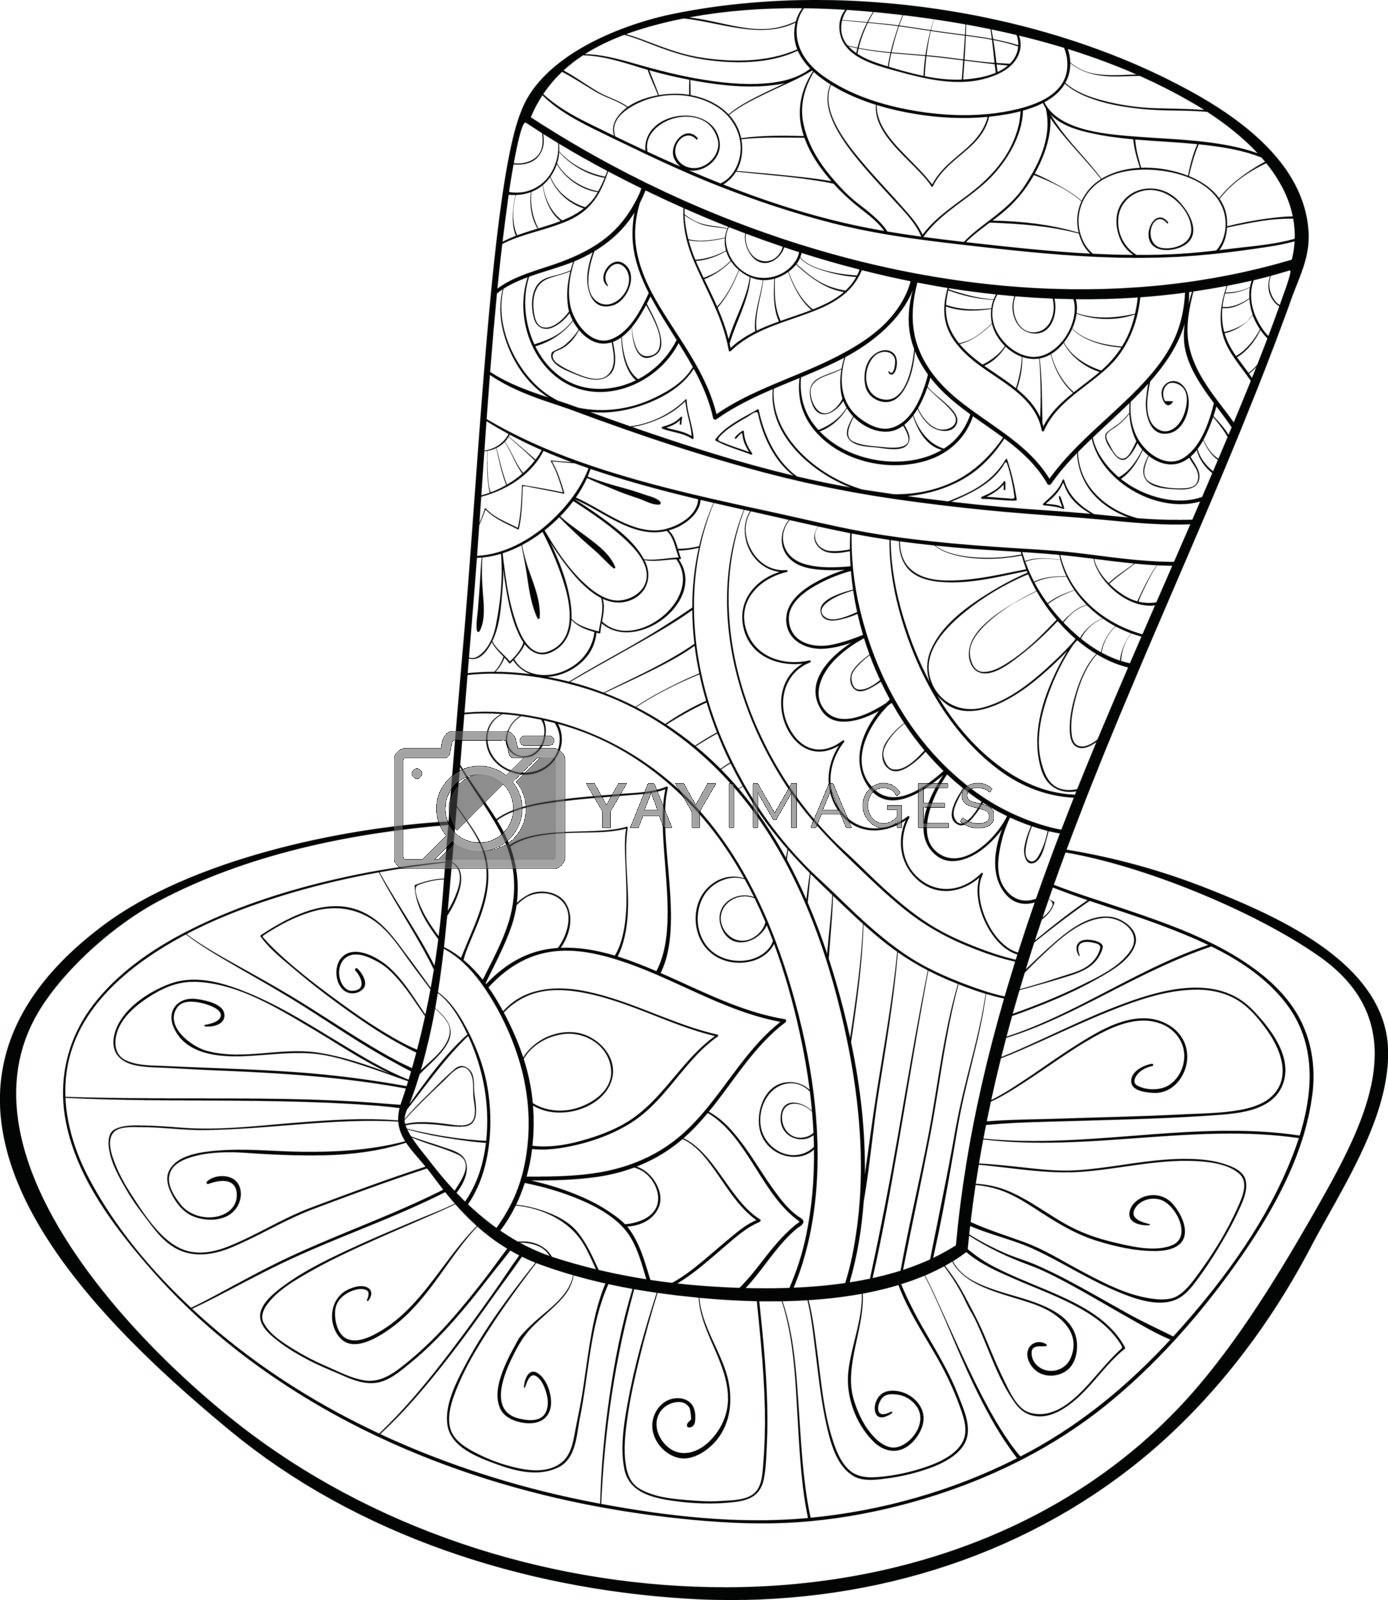 A cute hat with ornaments  image for relaxing activity.A coloring book,page for adults.Zen art style illustration for print.Poster design.